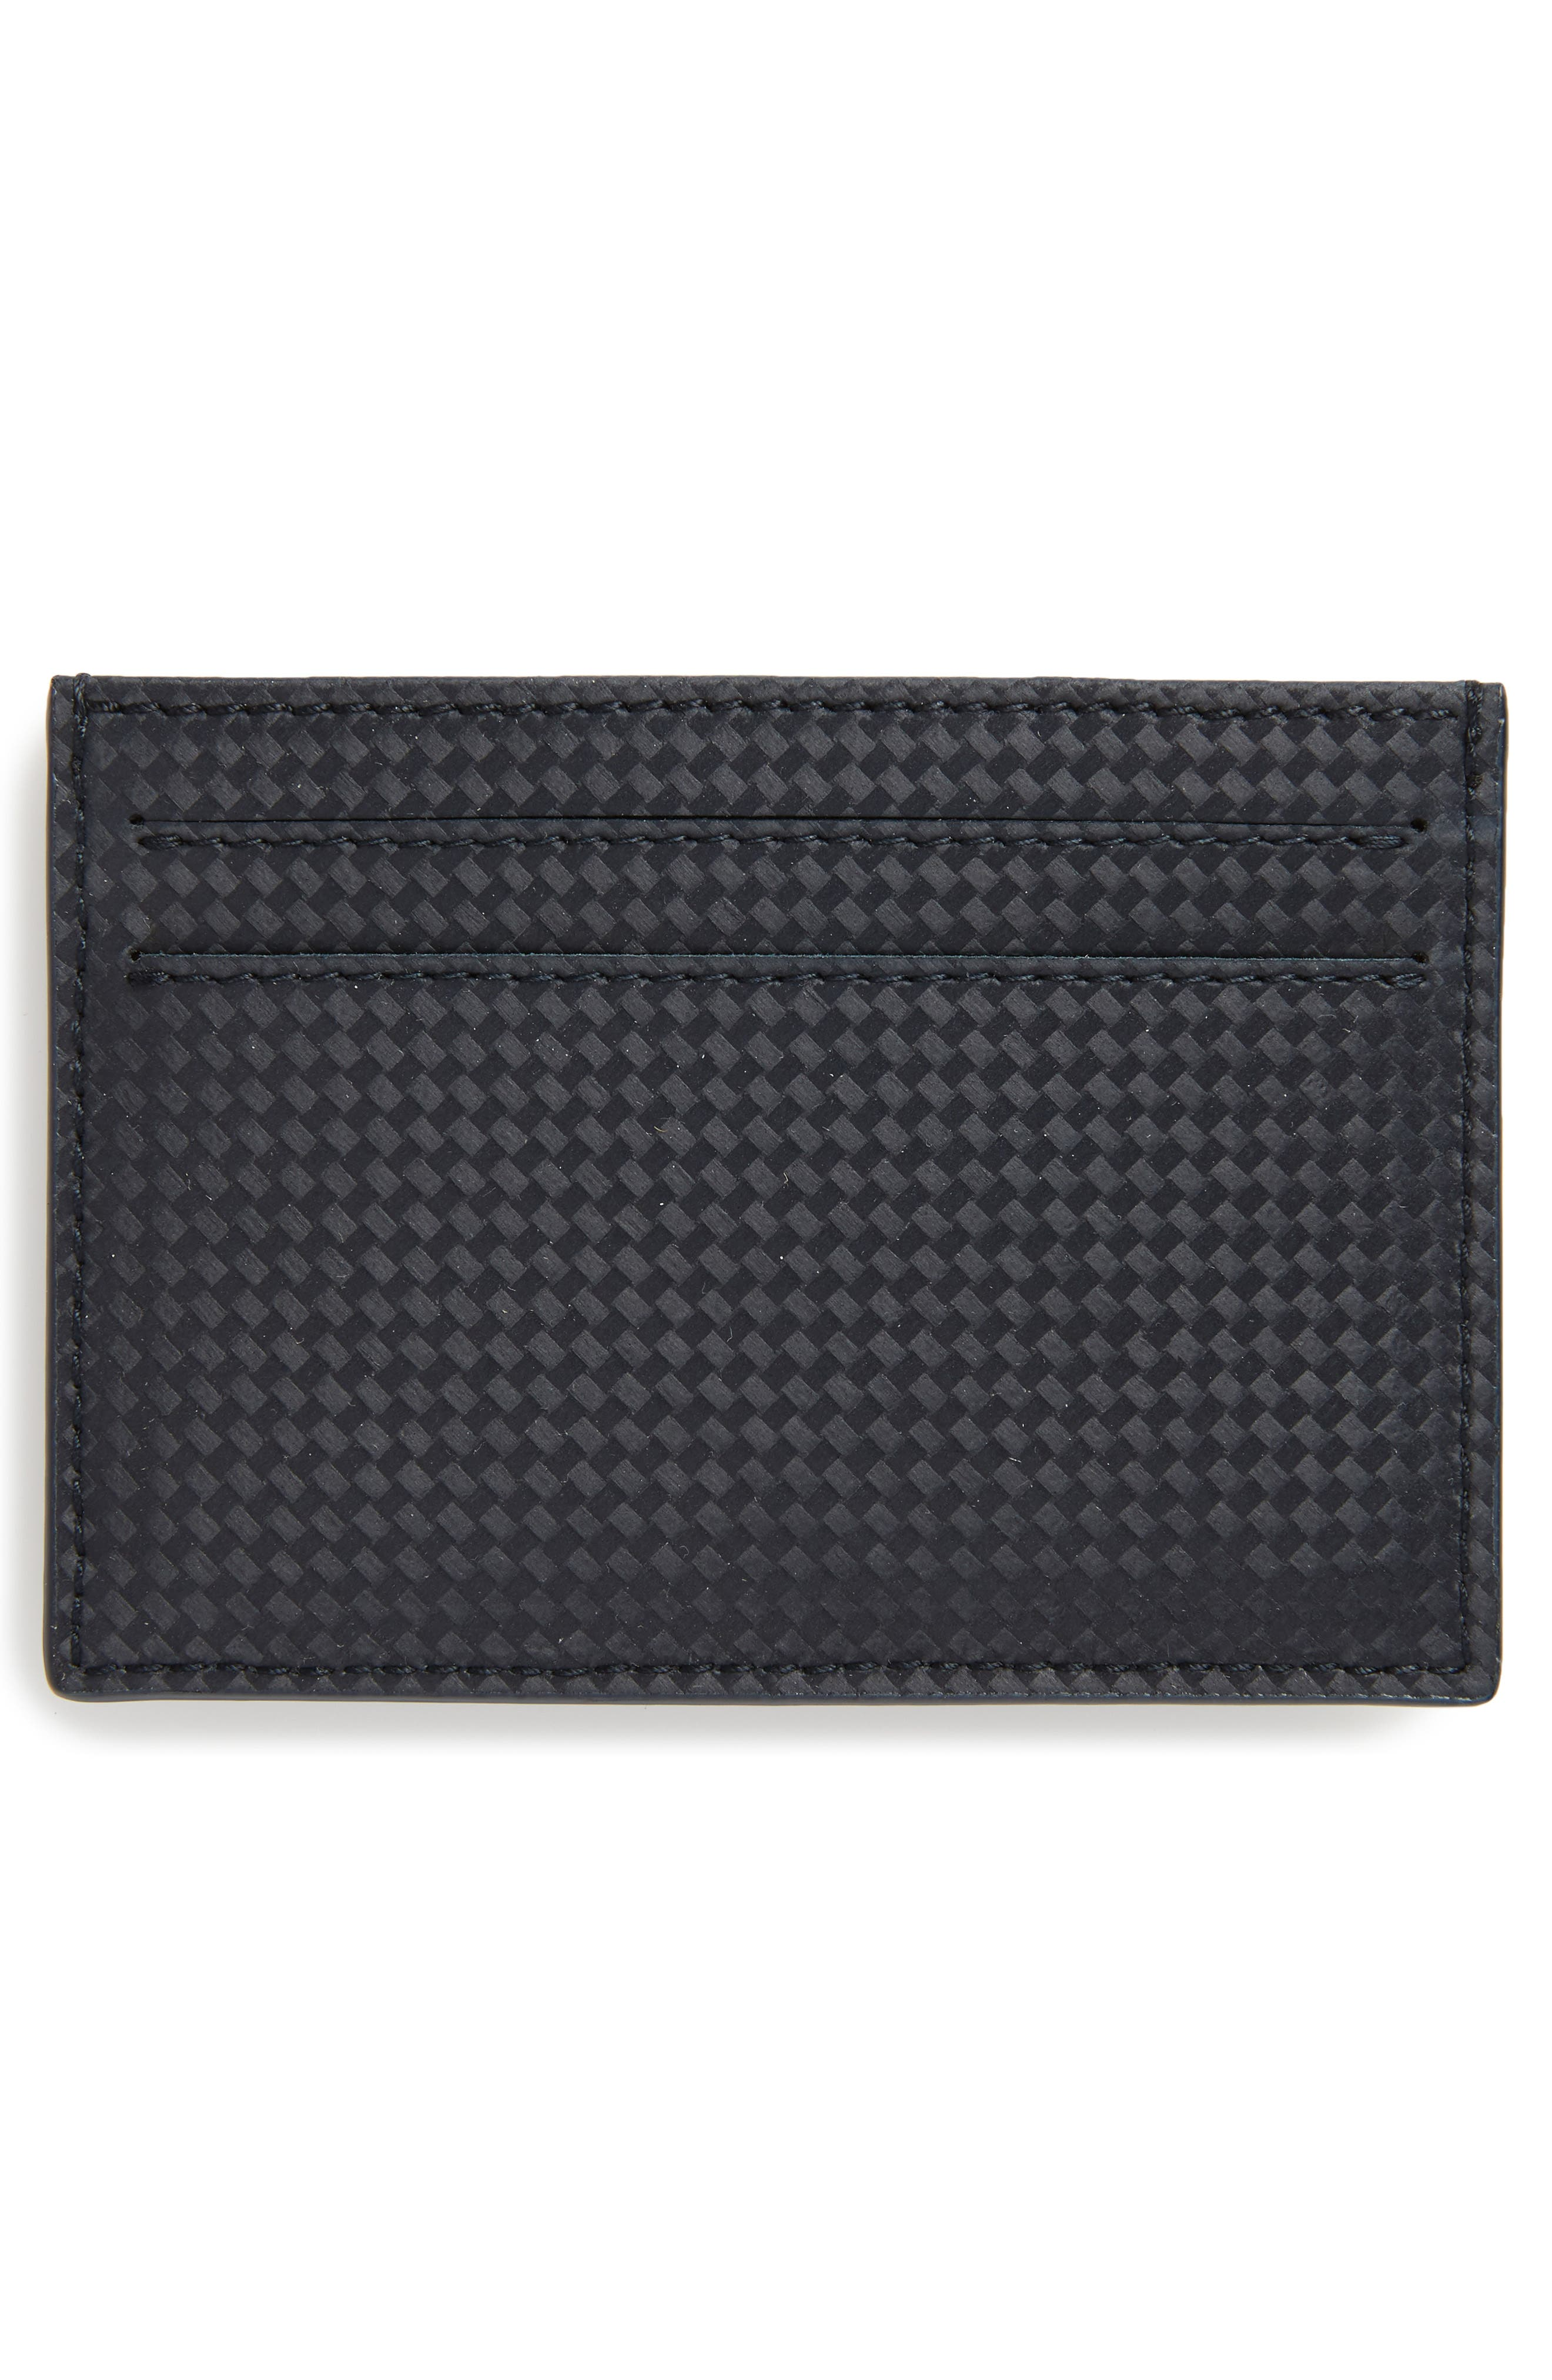 MONTBLANC, Extreme Leather Card Case, Alternate thumbnail 2, color, 400